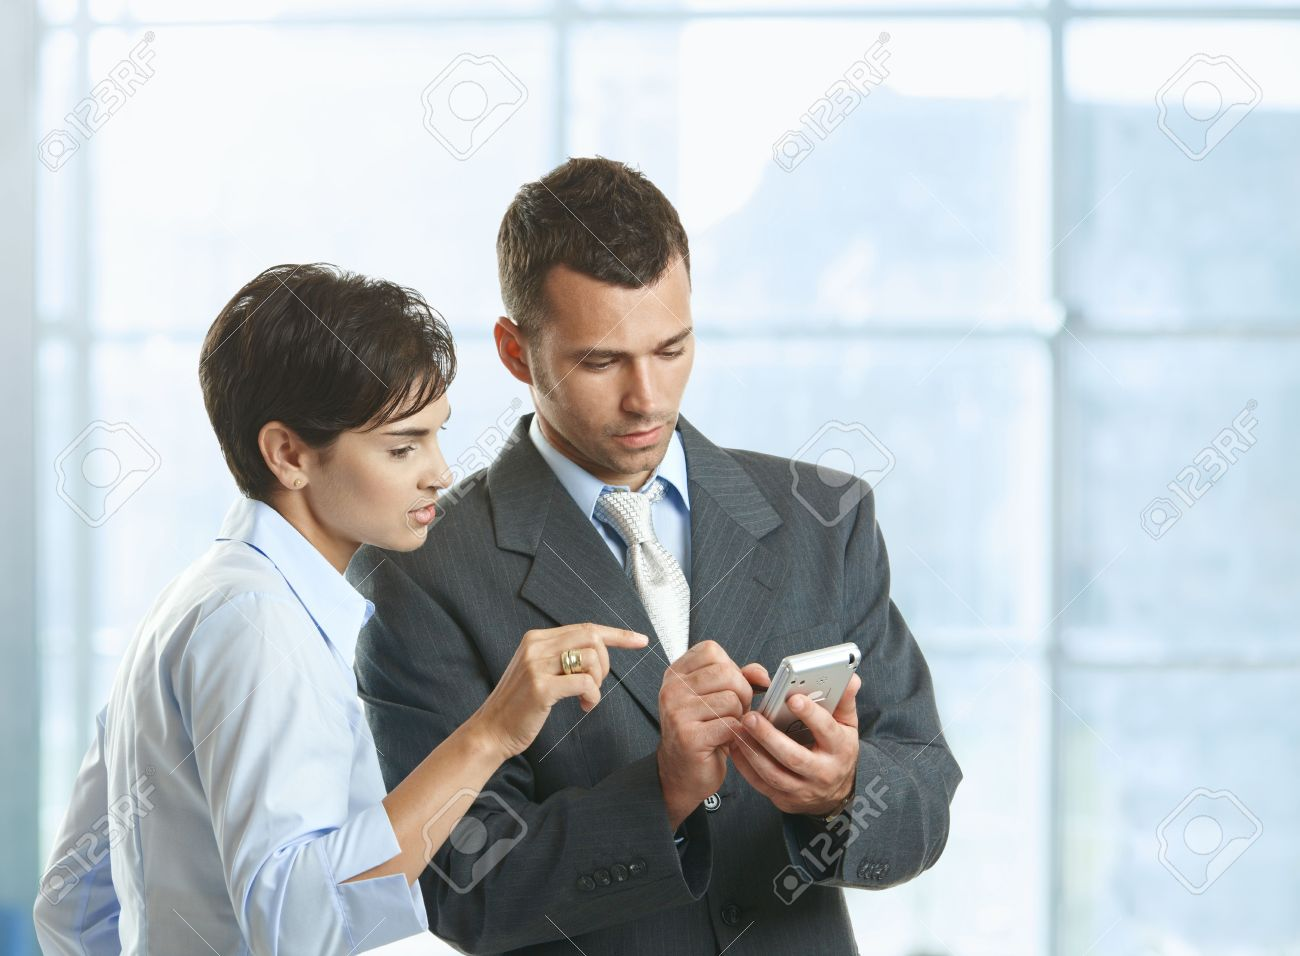 Two businesspeople standing in office lobby , looking at smart mobile phone, smiling. Stock Photo - 6338343